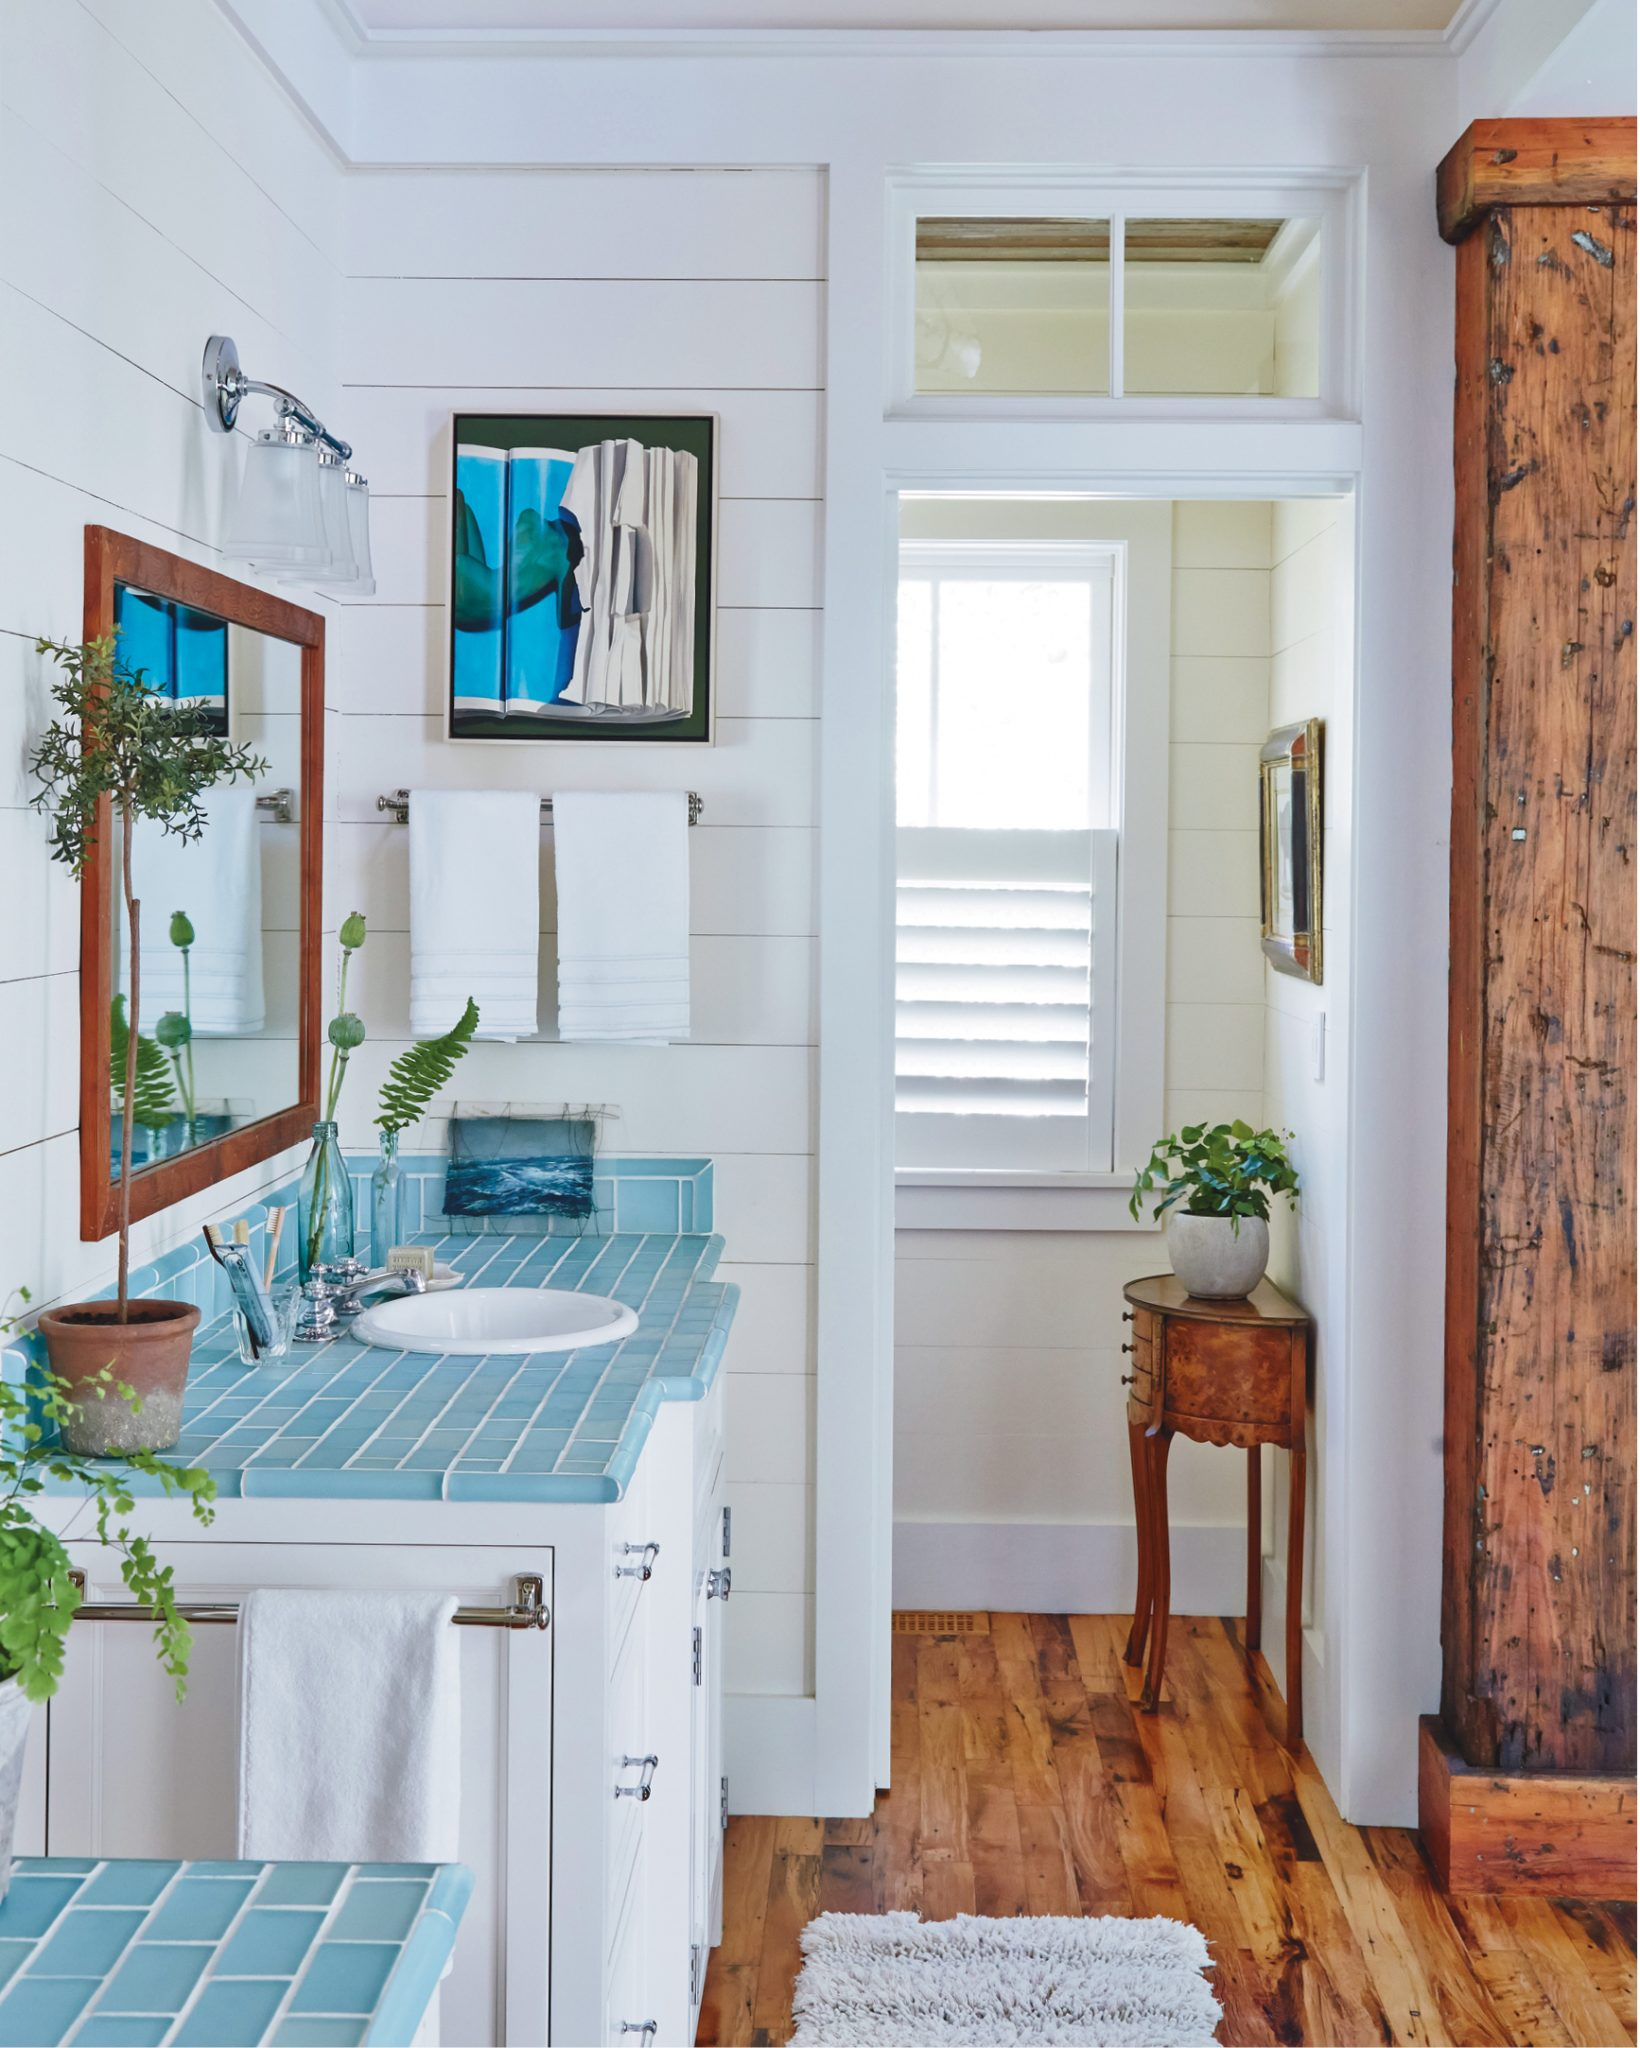 White Shiplap walls, heart of pine flooring and pastel subway tile by J Banks Design